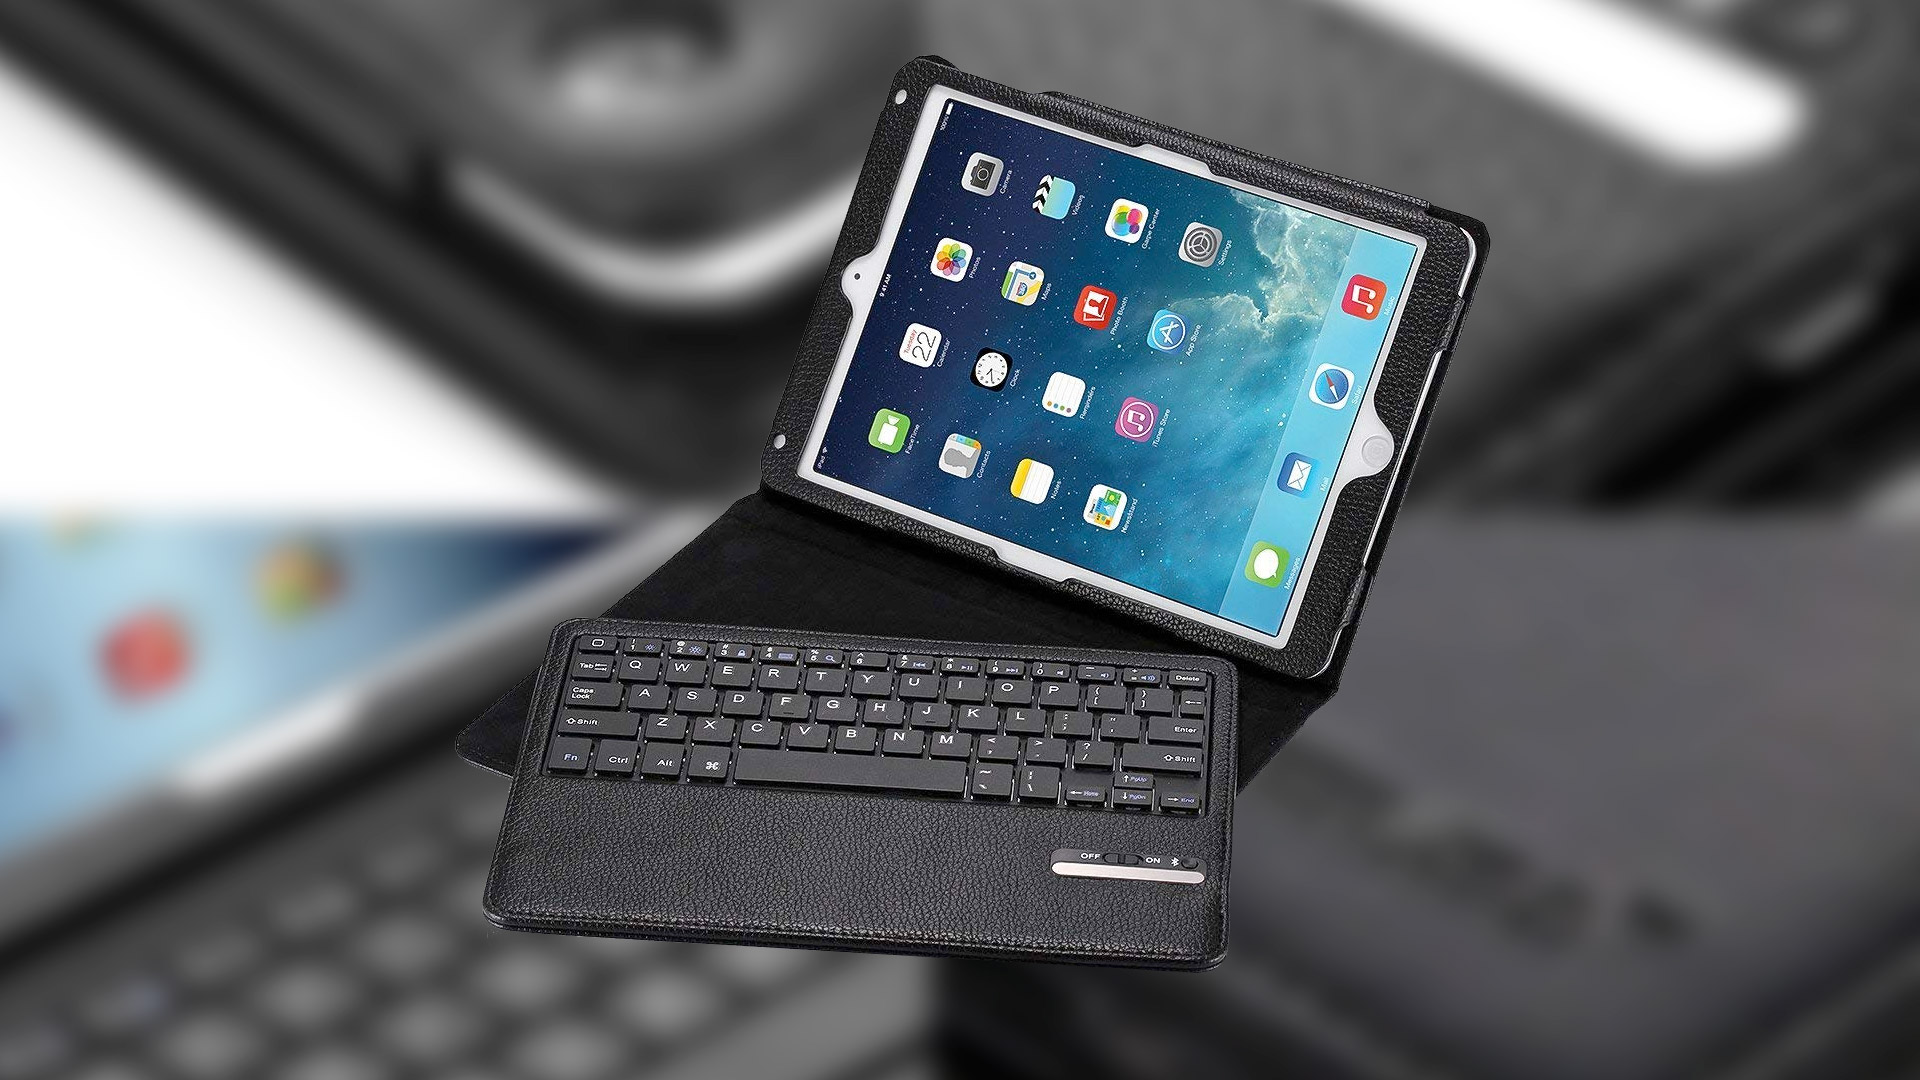 30 Super Useful iPad Air 2 Cases You Should Try